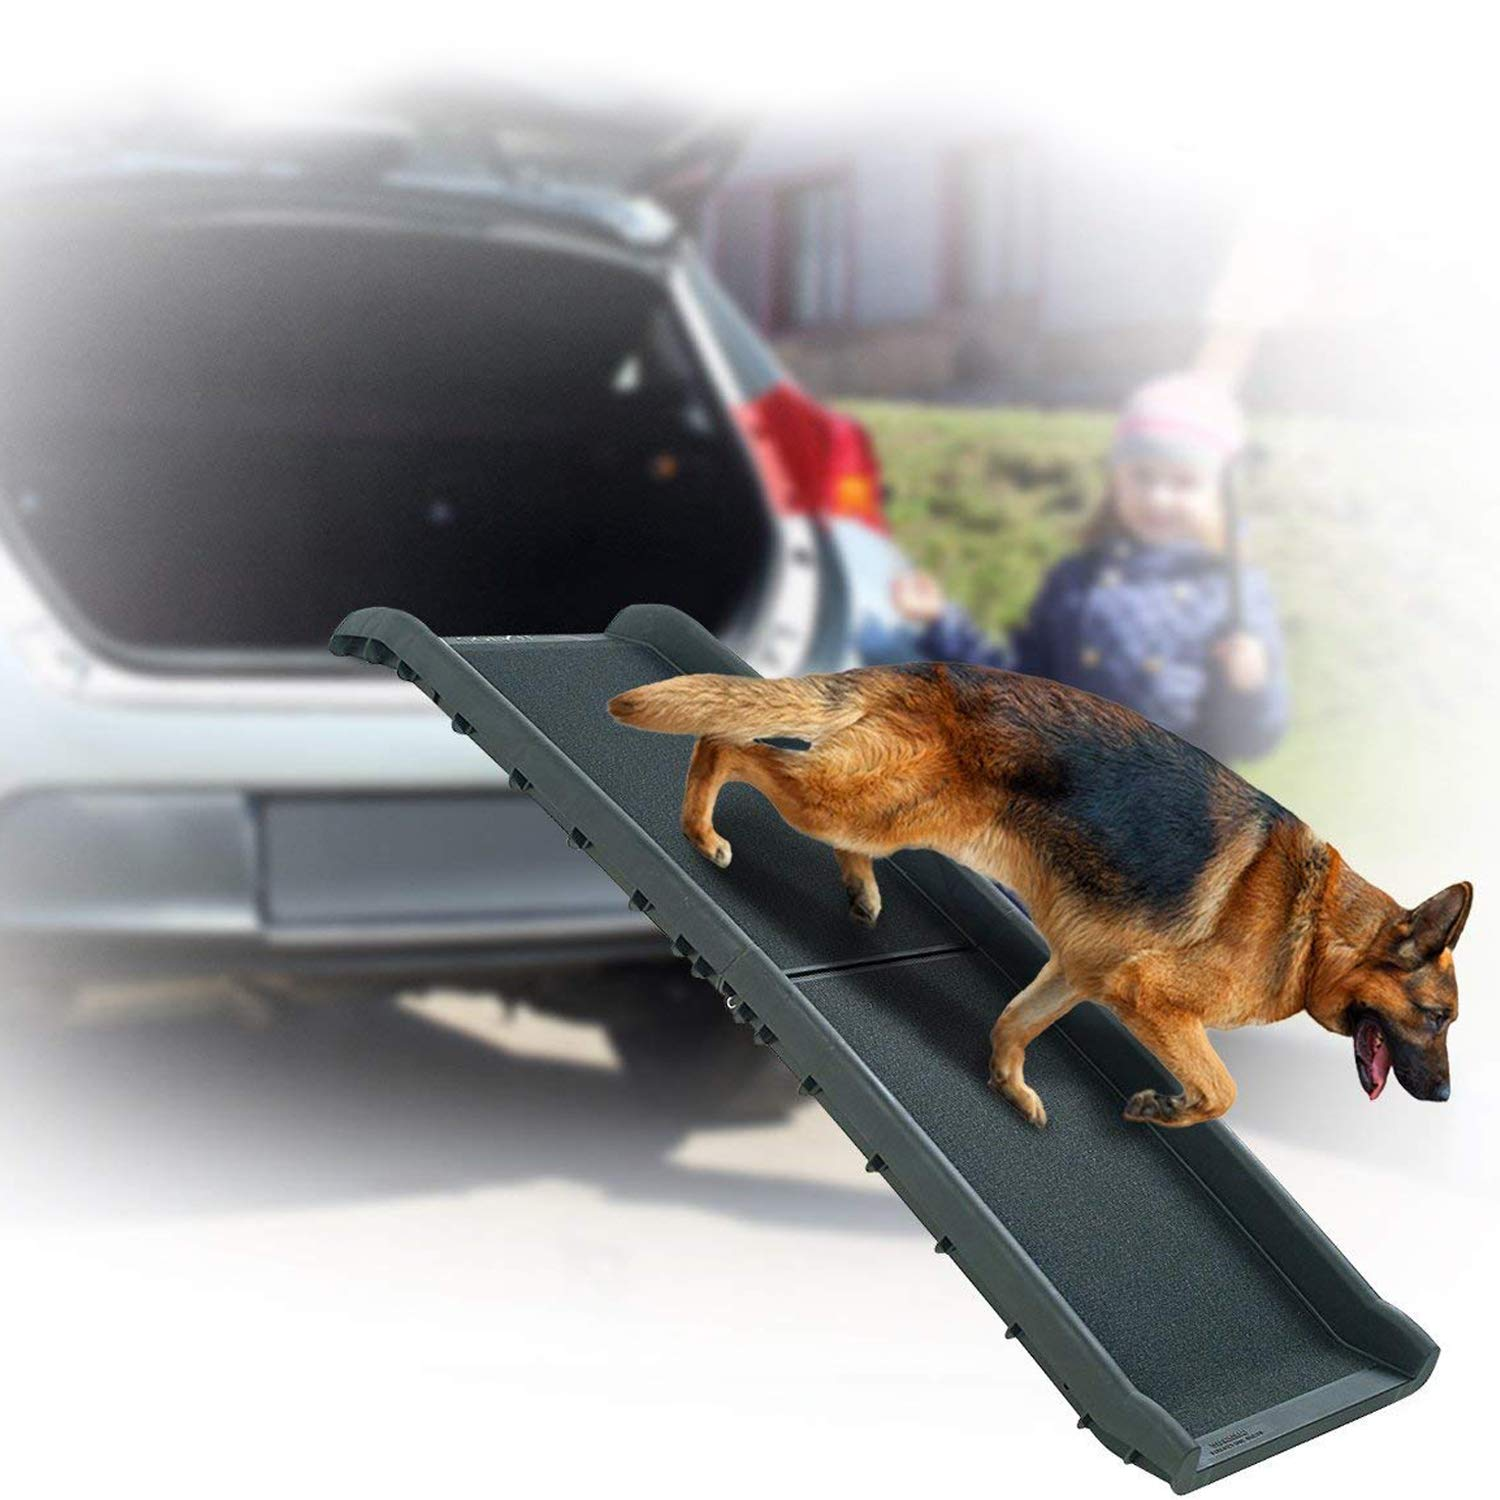 Perfect Life Ideas Dog Ramps for Large Dogs SUV - Bi Folding Pet Ramp That Supports up to 200 LBS - Indoor Outdoor Dog Car Ramp for Dogs